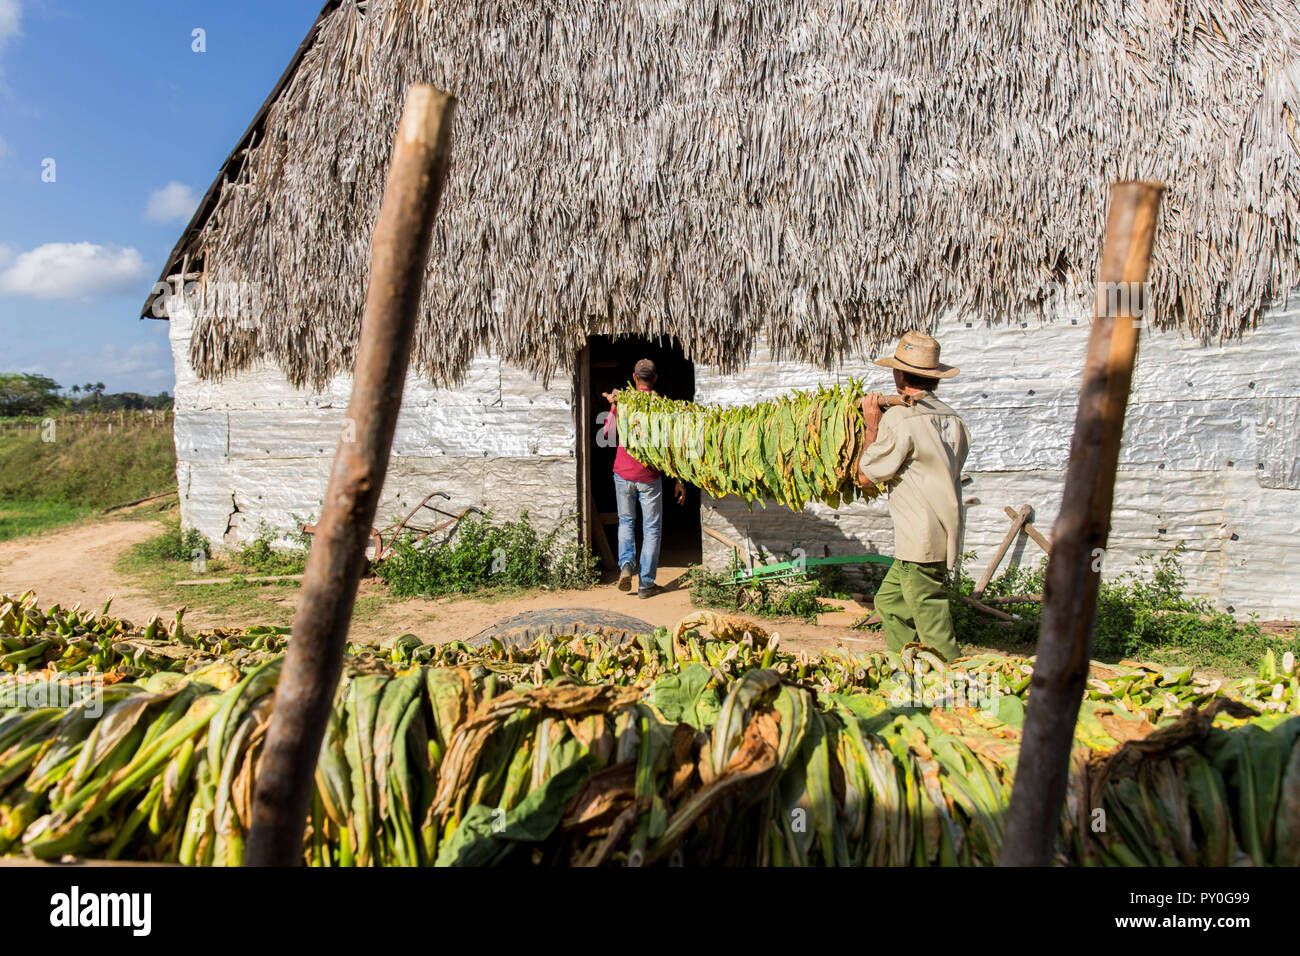 Two men carrying tobacco leaves in plantation, Vinales, Pinar del Rio Province, Cuba - Stock Image